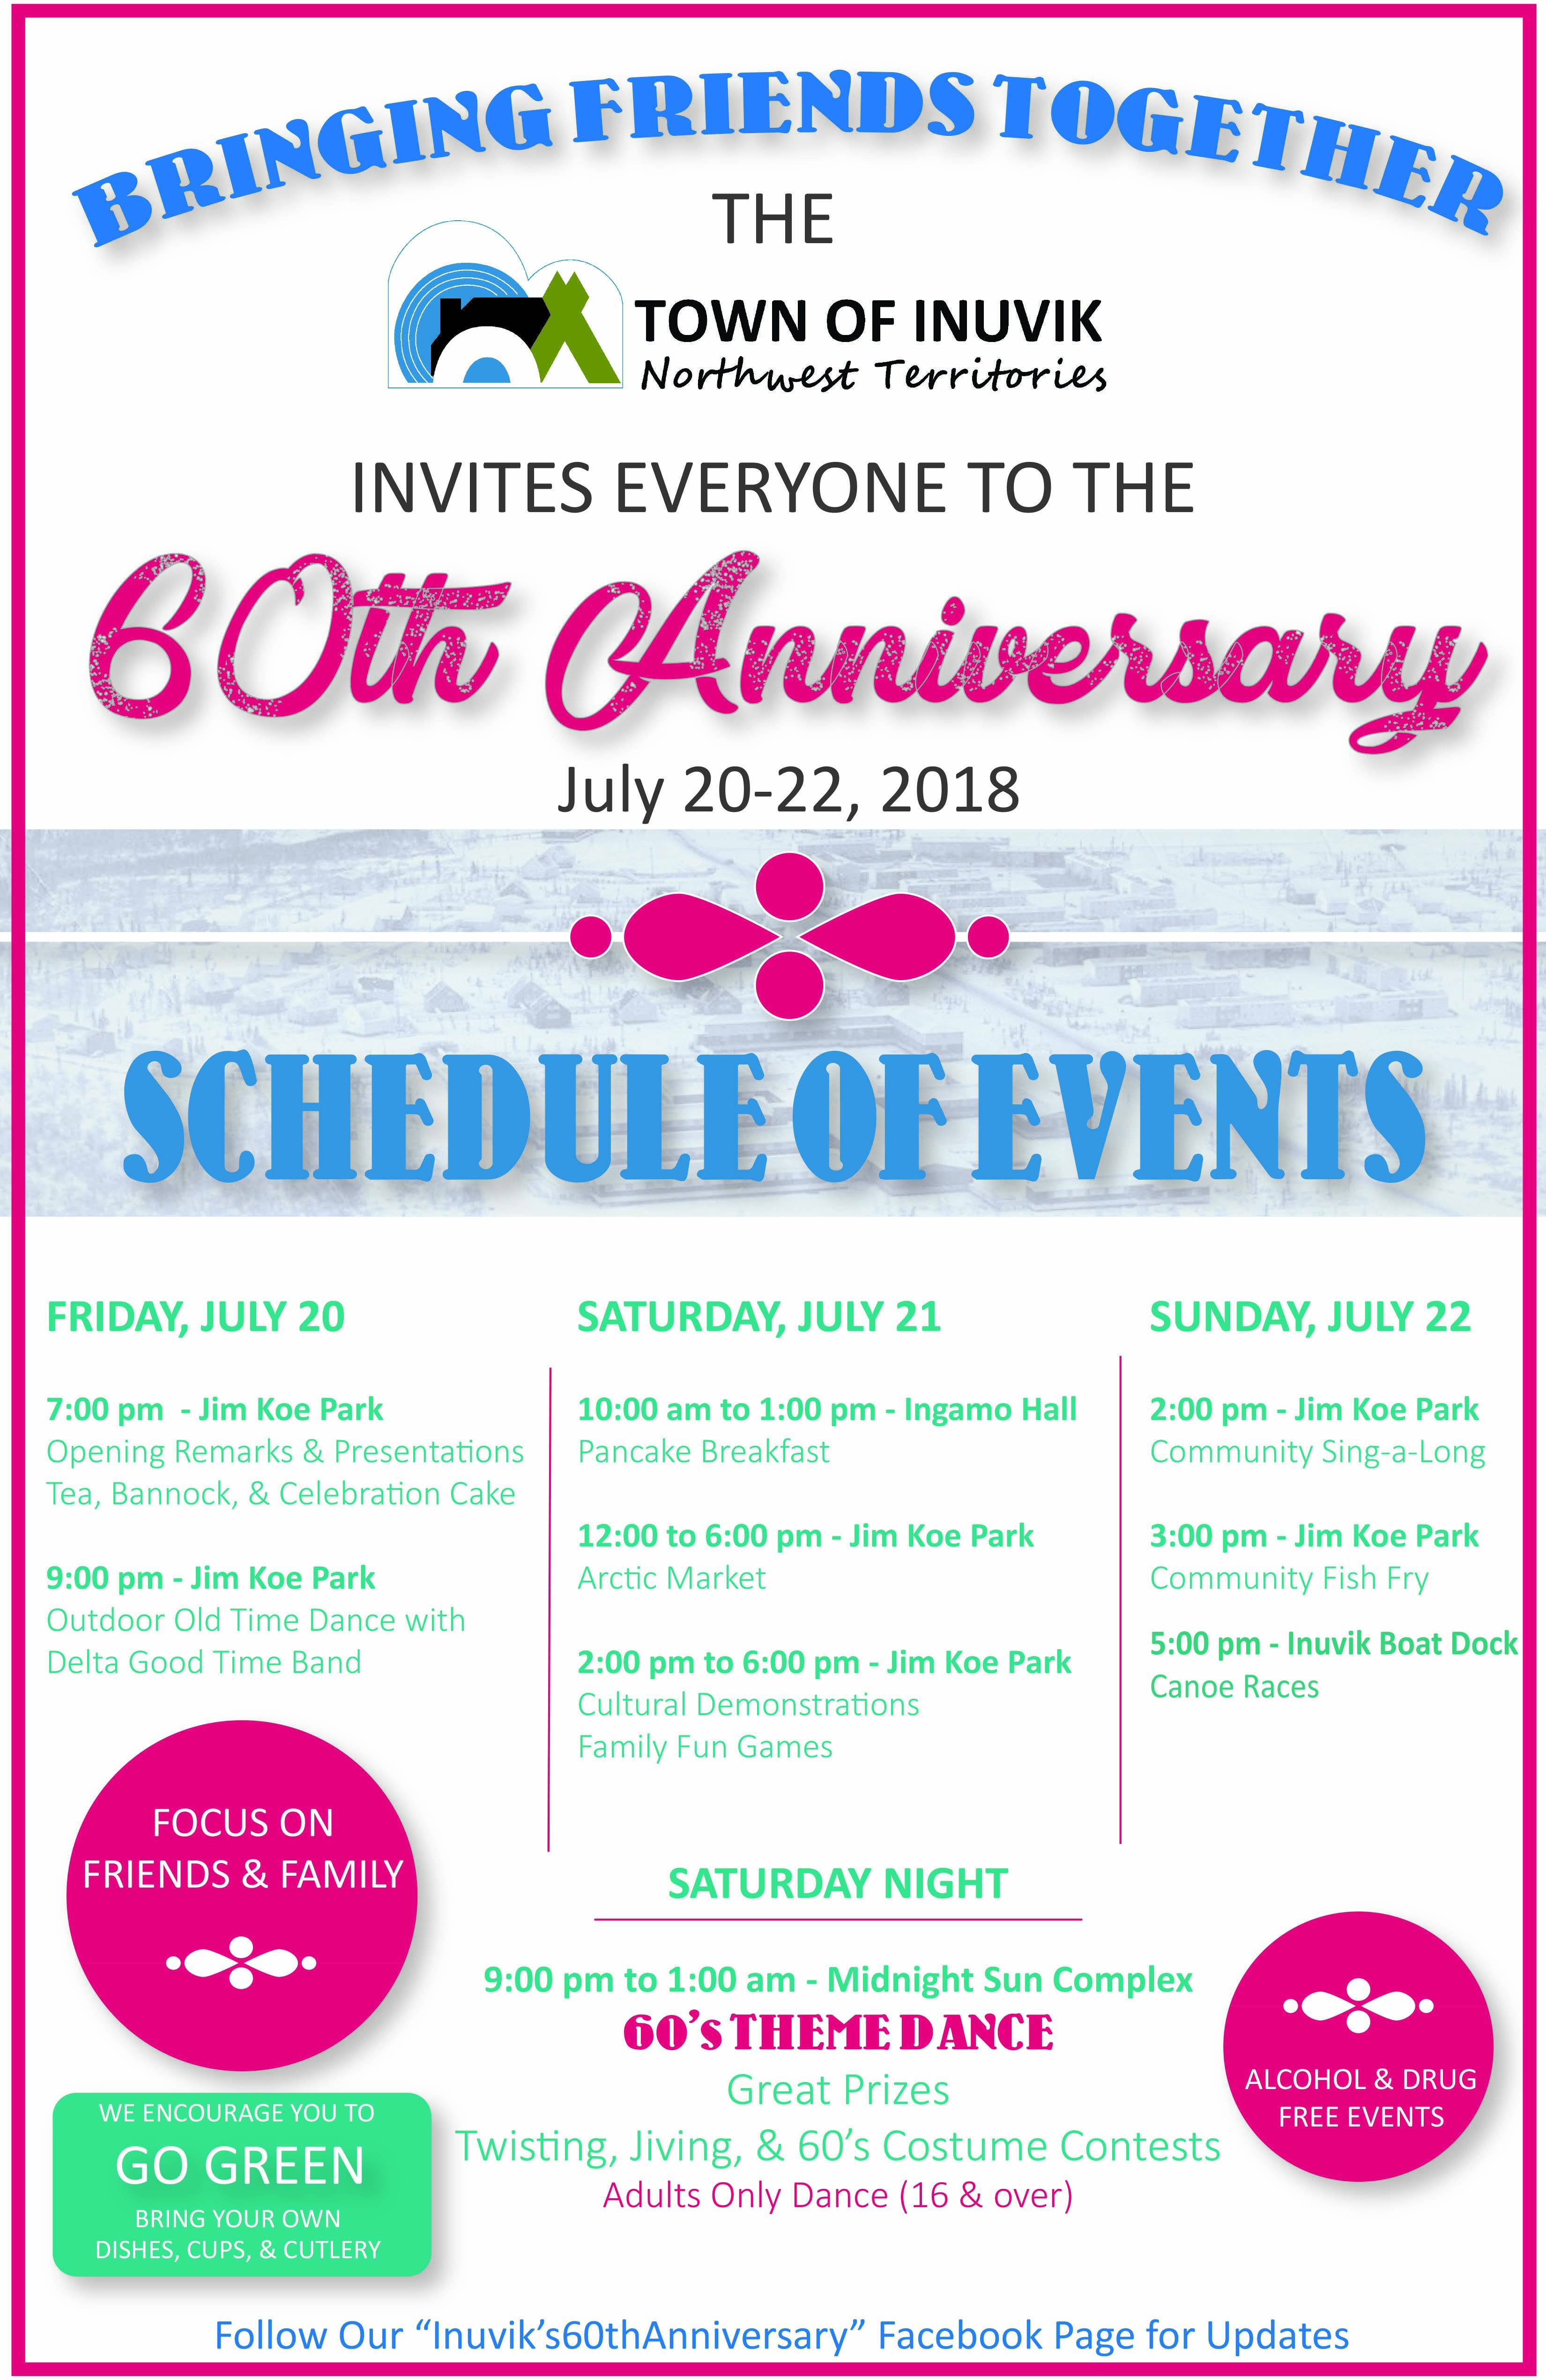 Town of Inuvik 60th Anniversary July 20 - 22, 2018